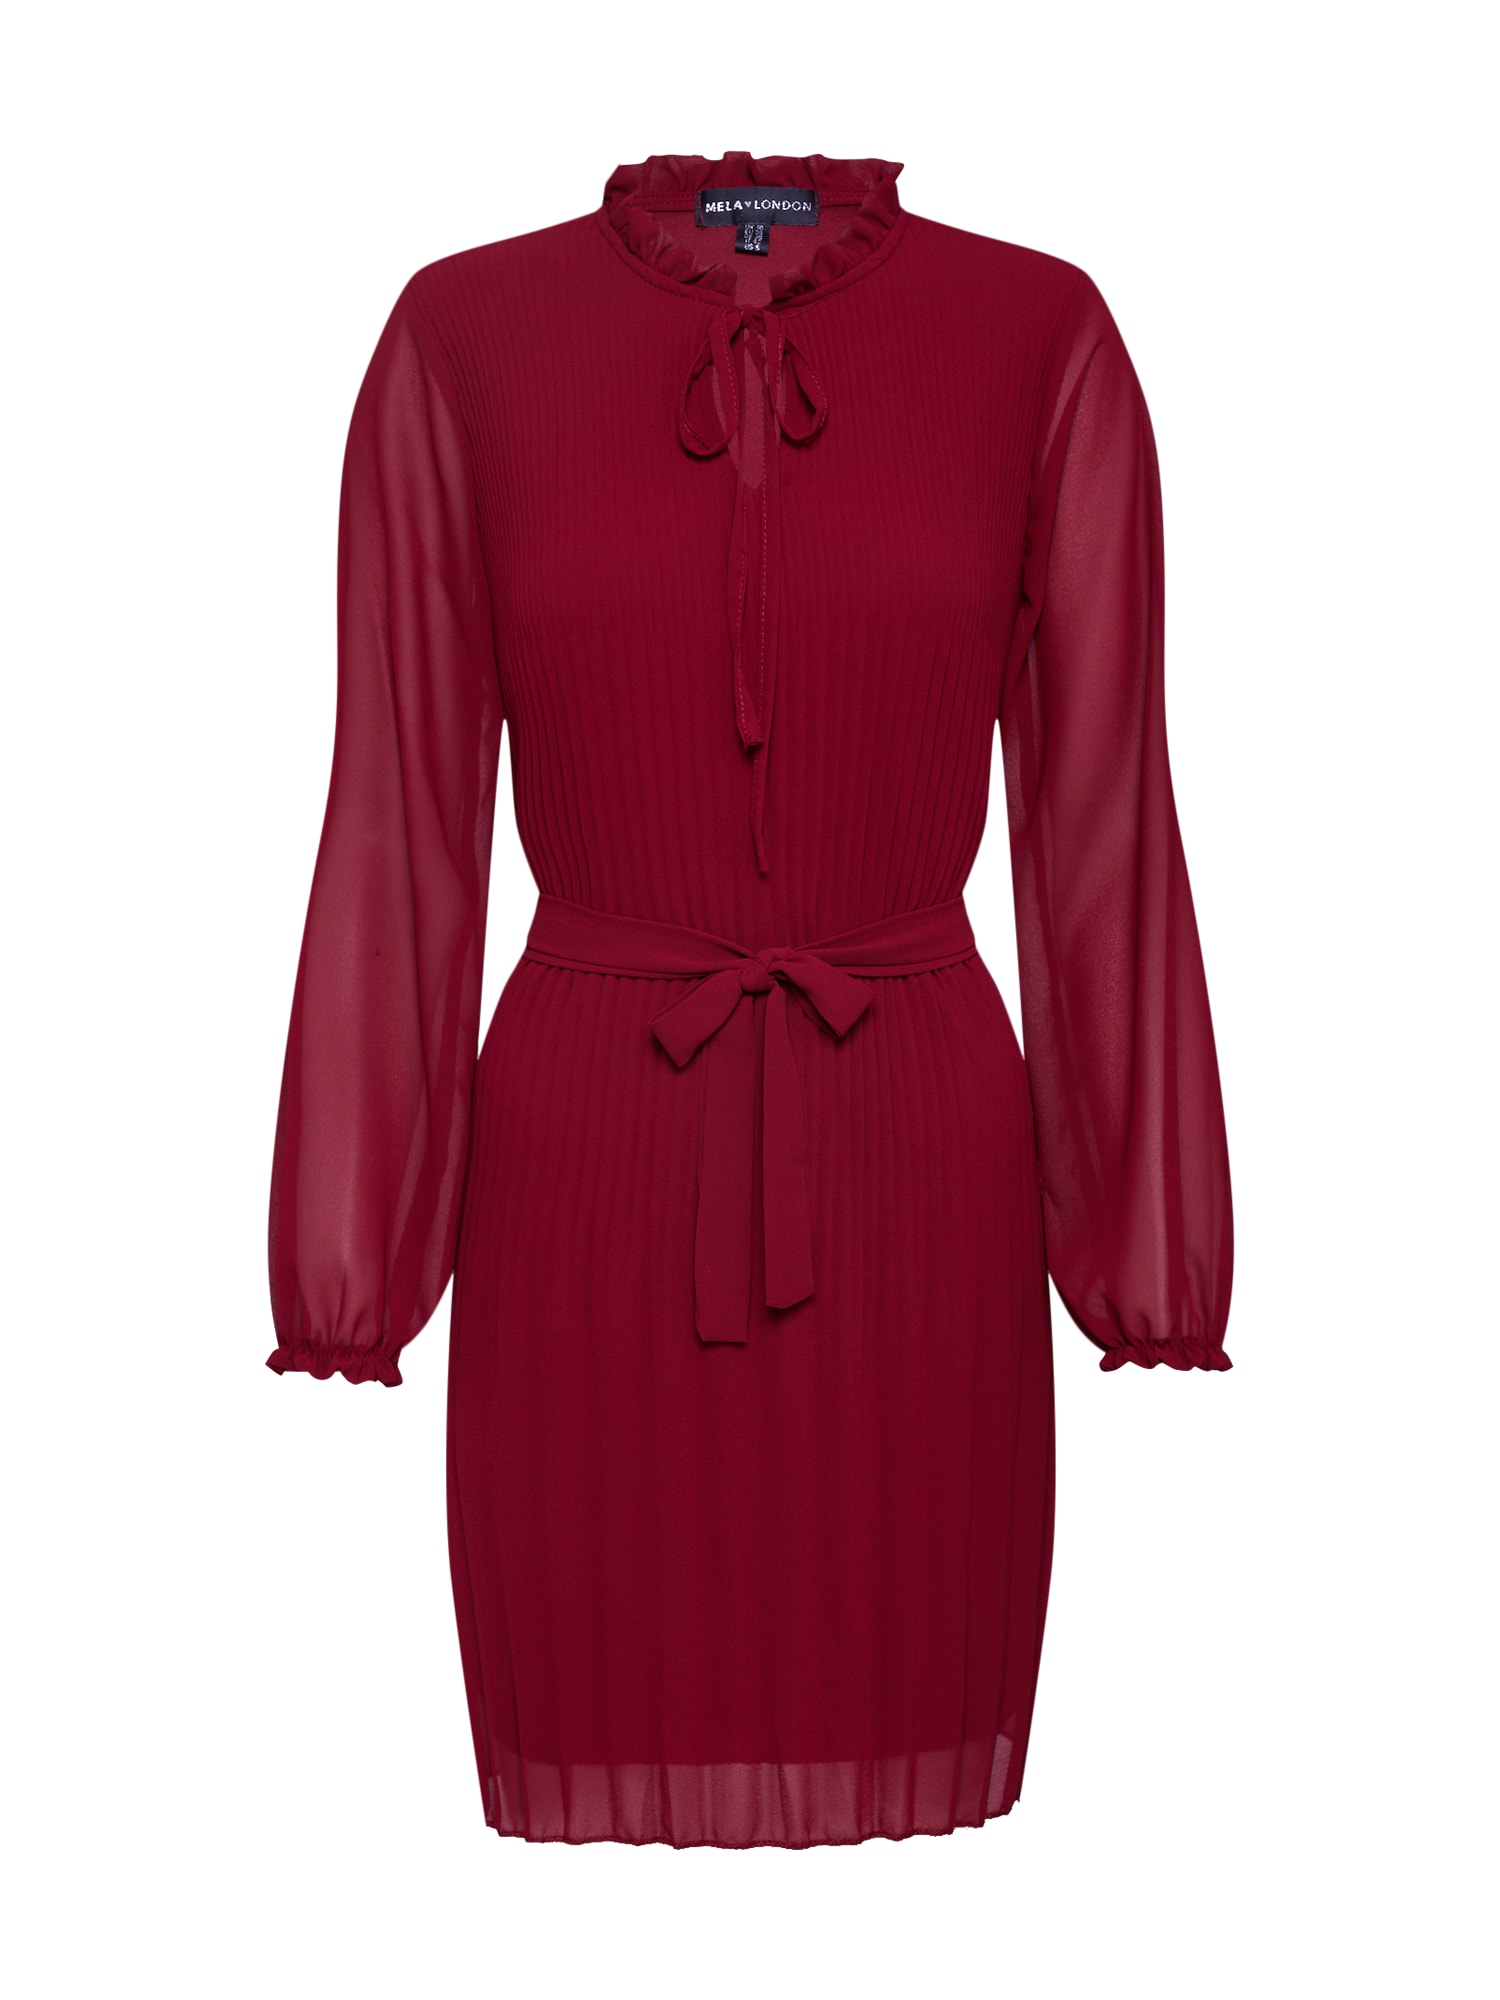 Mela London Suknelė 'LONG SLEEVE PLEATED BELTED DRESS' raudona